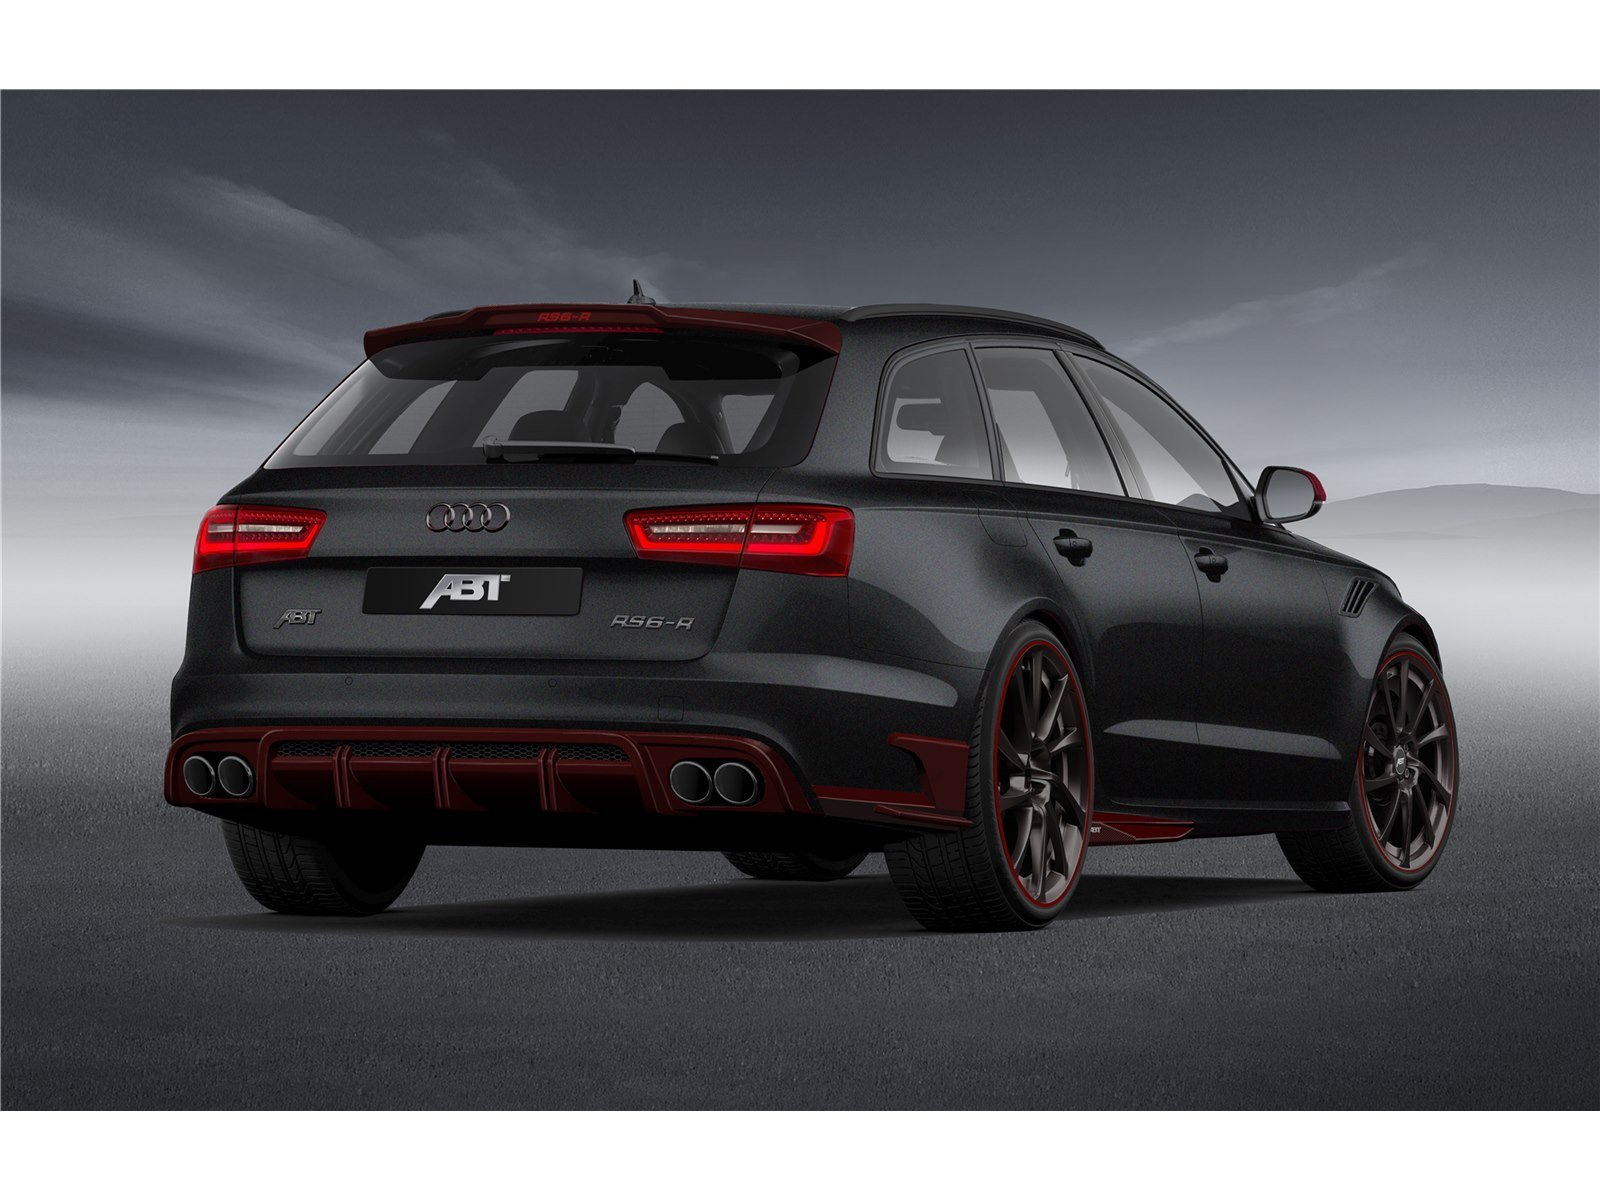 Latest Abt Sportsline Audi Rs6 R 2014 Exotic Car Wallpapers 14 Free Download